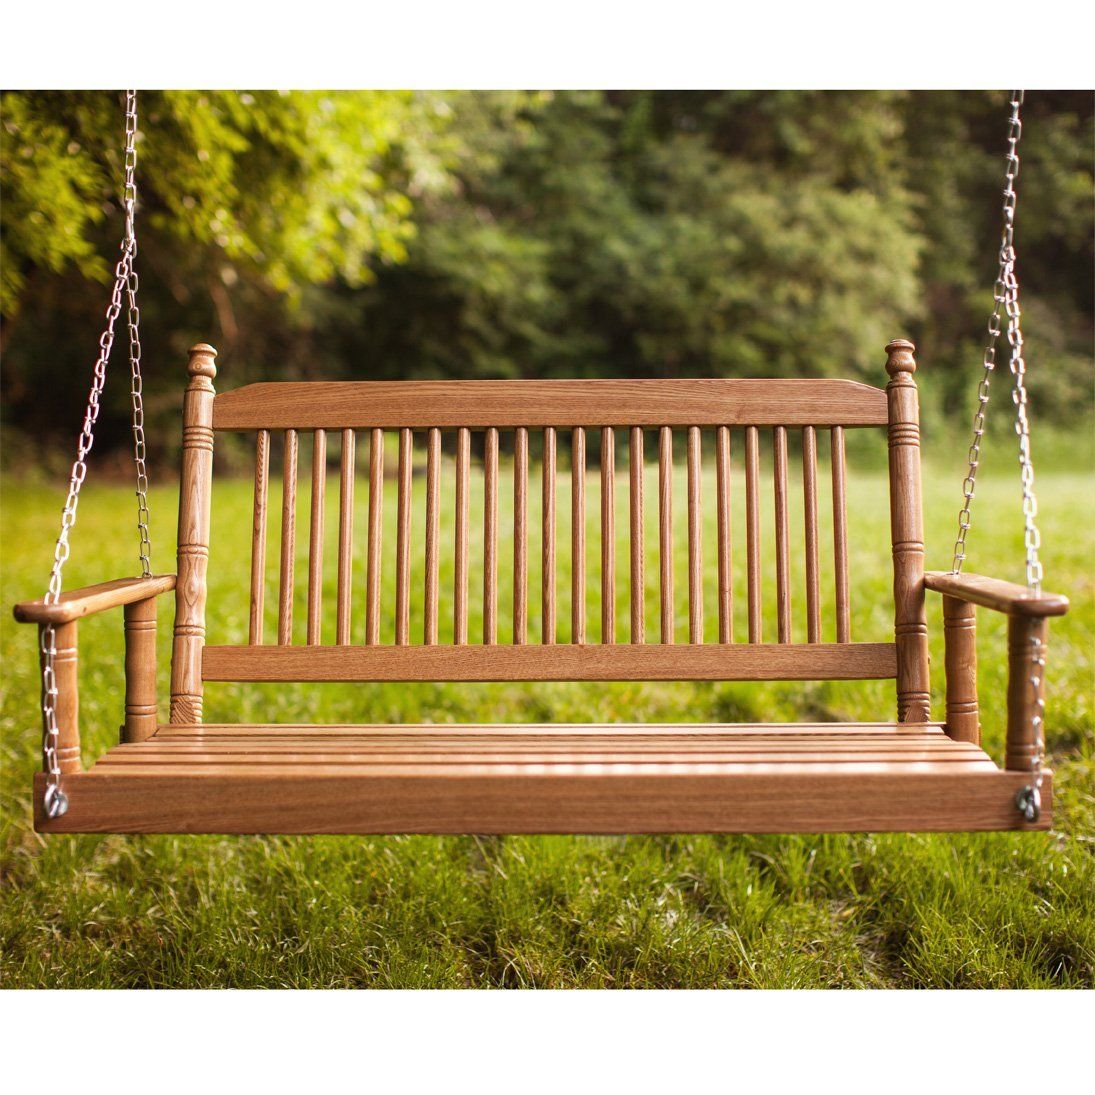 5 Oak Porch Swing Rta Seating Porch Swing Porch Hardwood